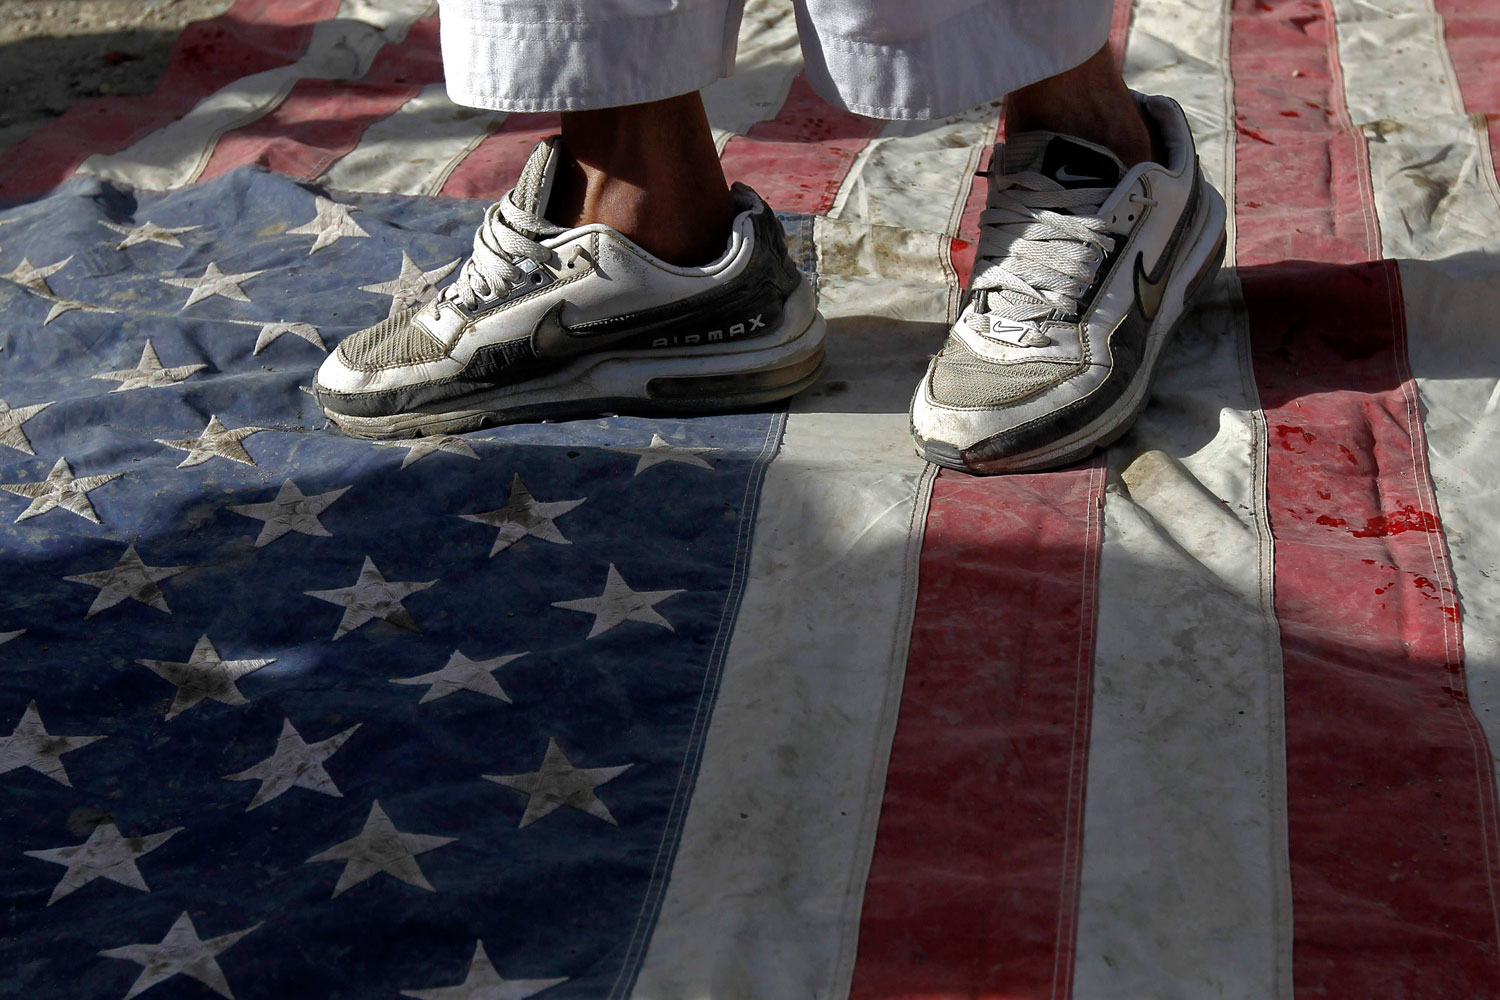 Sept. 21, 2012. An Afghan protester steps on a U.S. flag during a demonstration in Kabul. Hundreds of Afghans protested against a U.S.-made film they say insults the Prophet Mohammed.